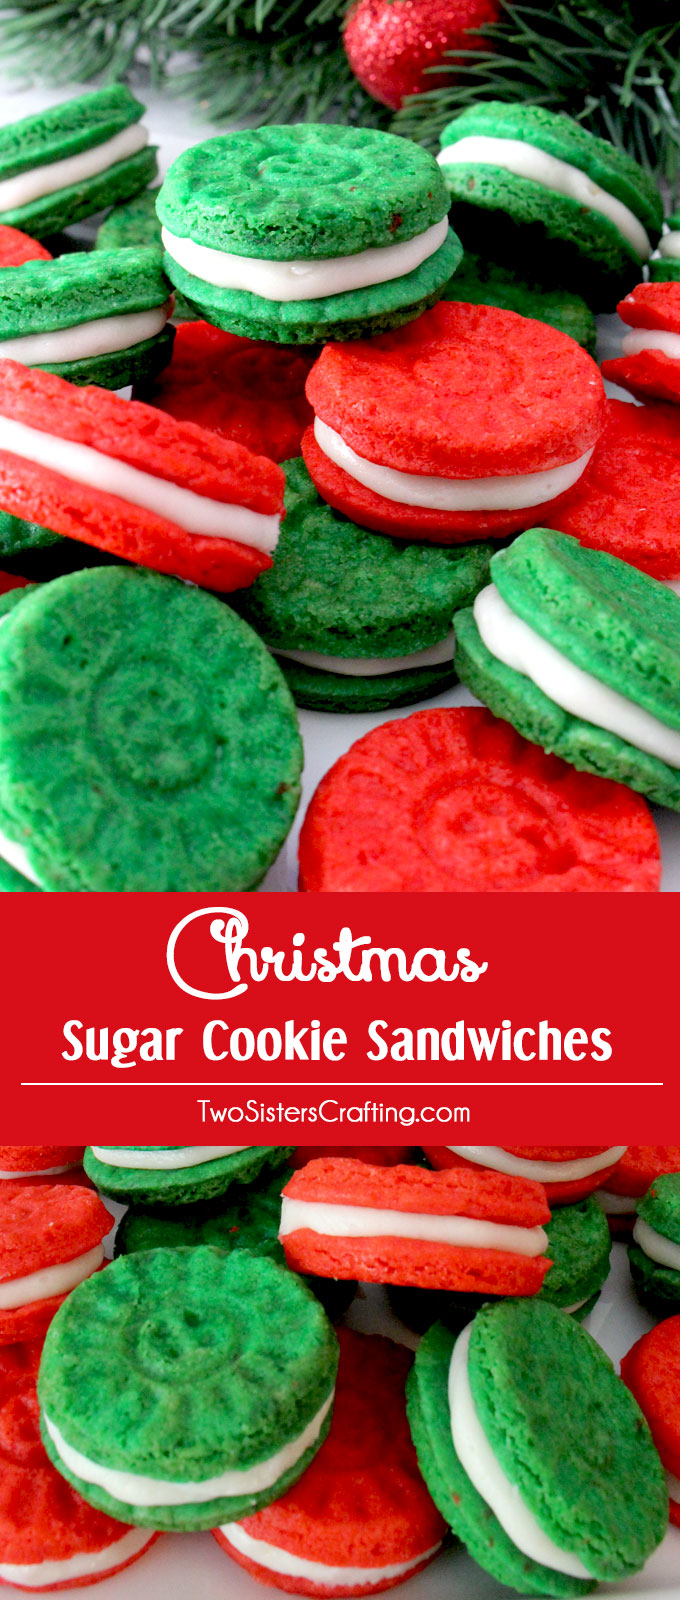 Sugar Cookie Sandwiches With Buttercream Frosting Are A Fun Holiday Take On A Frosted Sugar Cookie